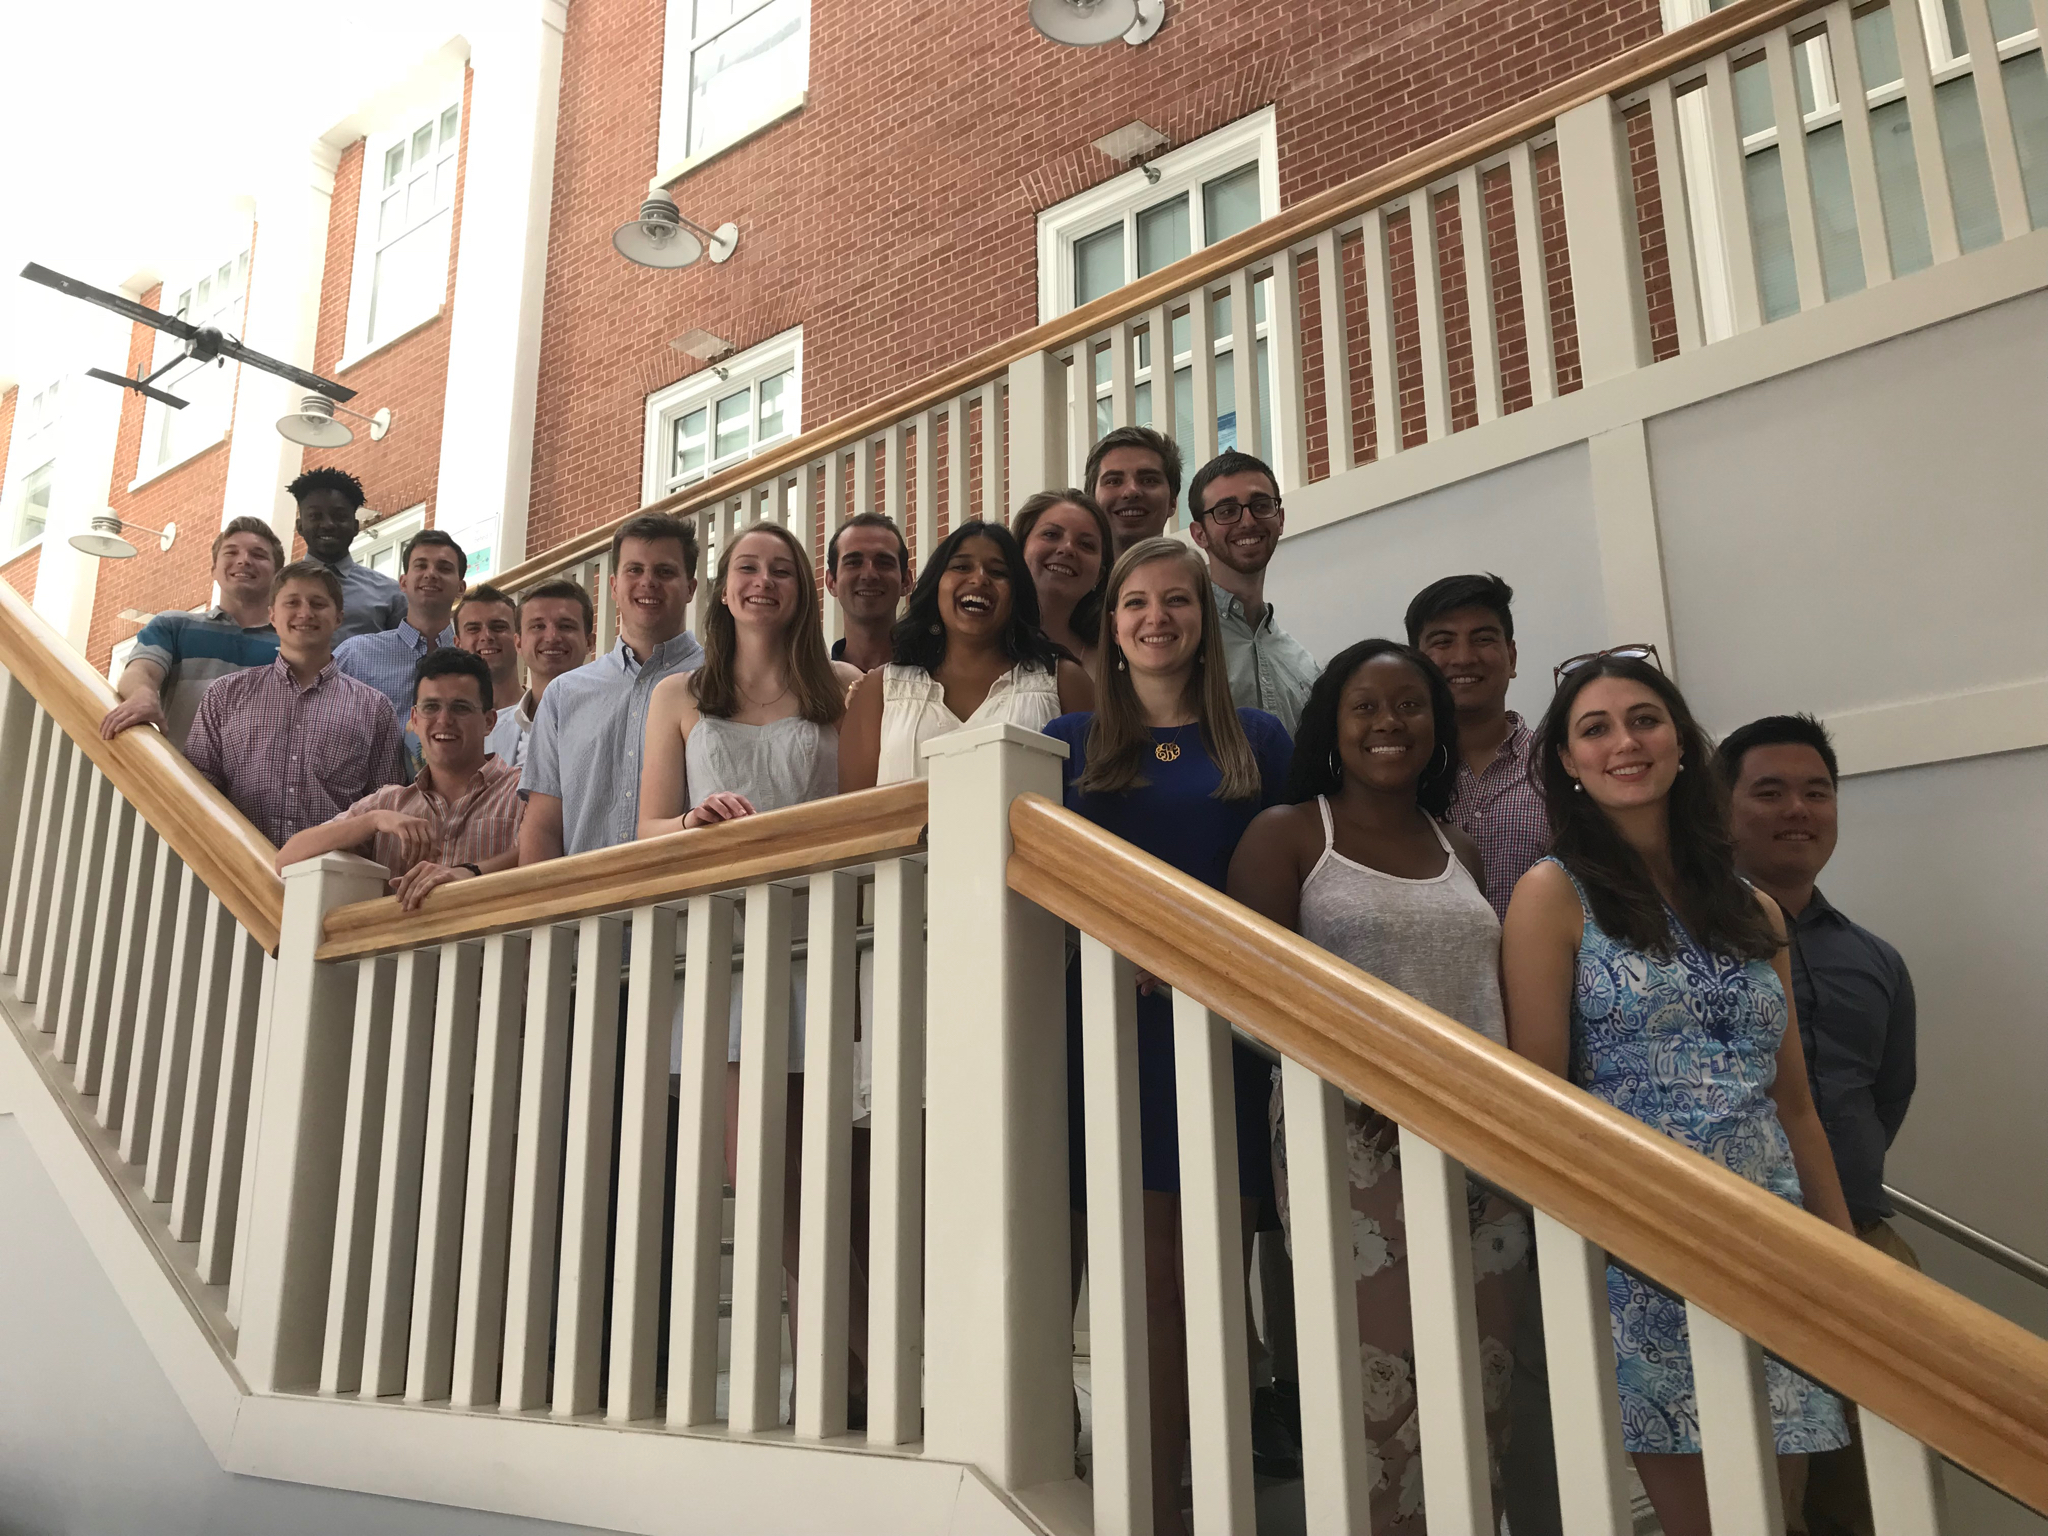 CS Senior Majors and Minors on the steps to the Great Hall